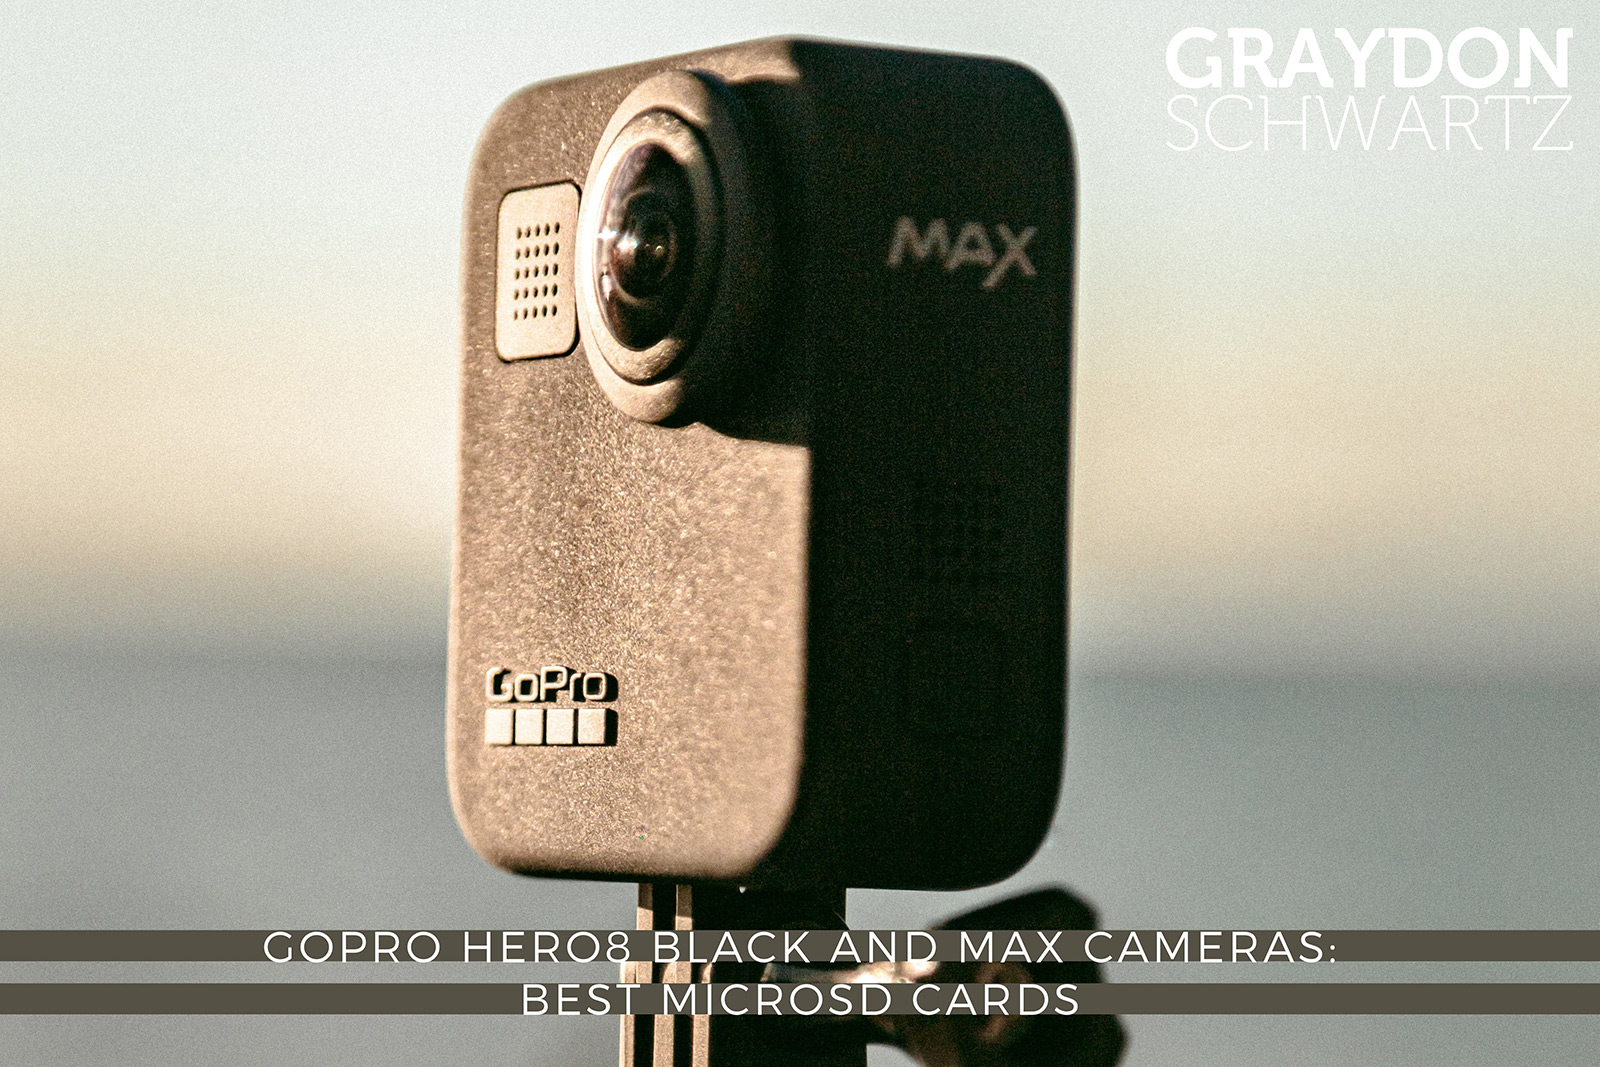 GoPro HERO8 BLACK and MAX Cameras: Best MicroSD Cards